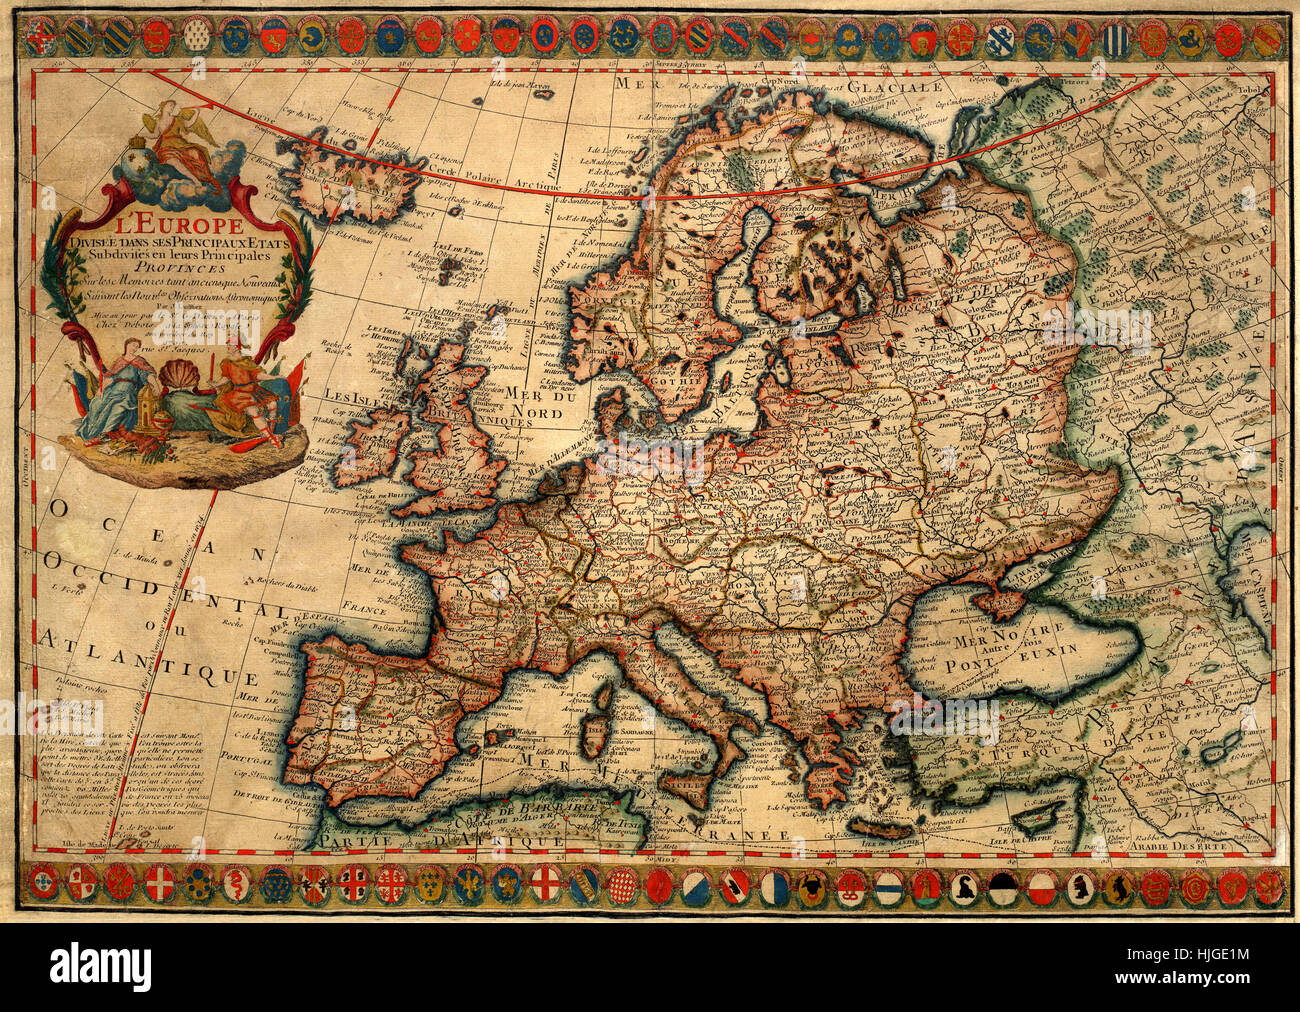 Map Of Europe 1700 Stock Photo 131898640 Alamy